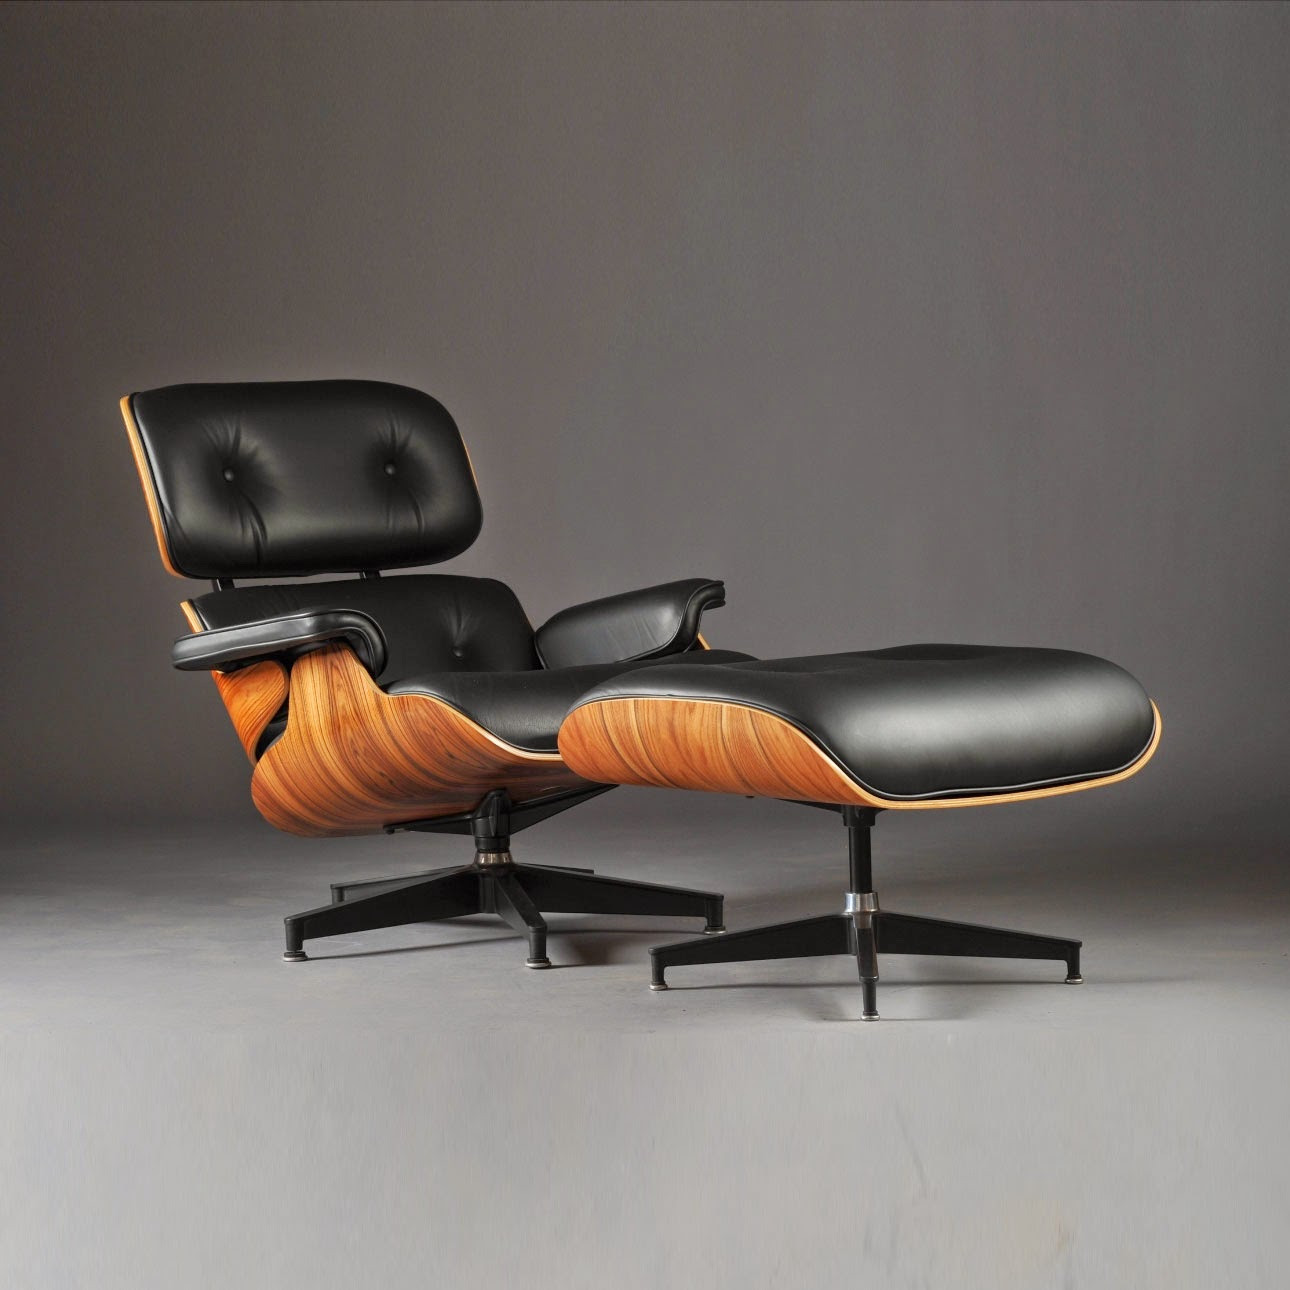 eames eames lounge chair modern design by. Black Bedroom Furniture Sets. Home Design Ideas